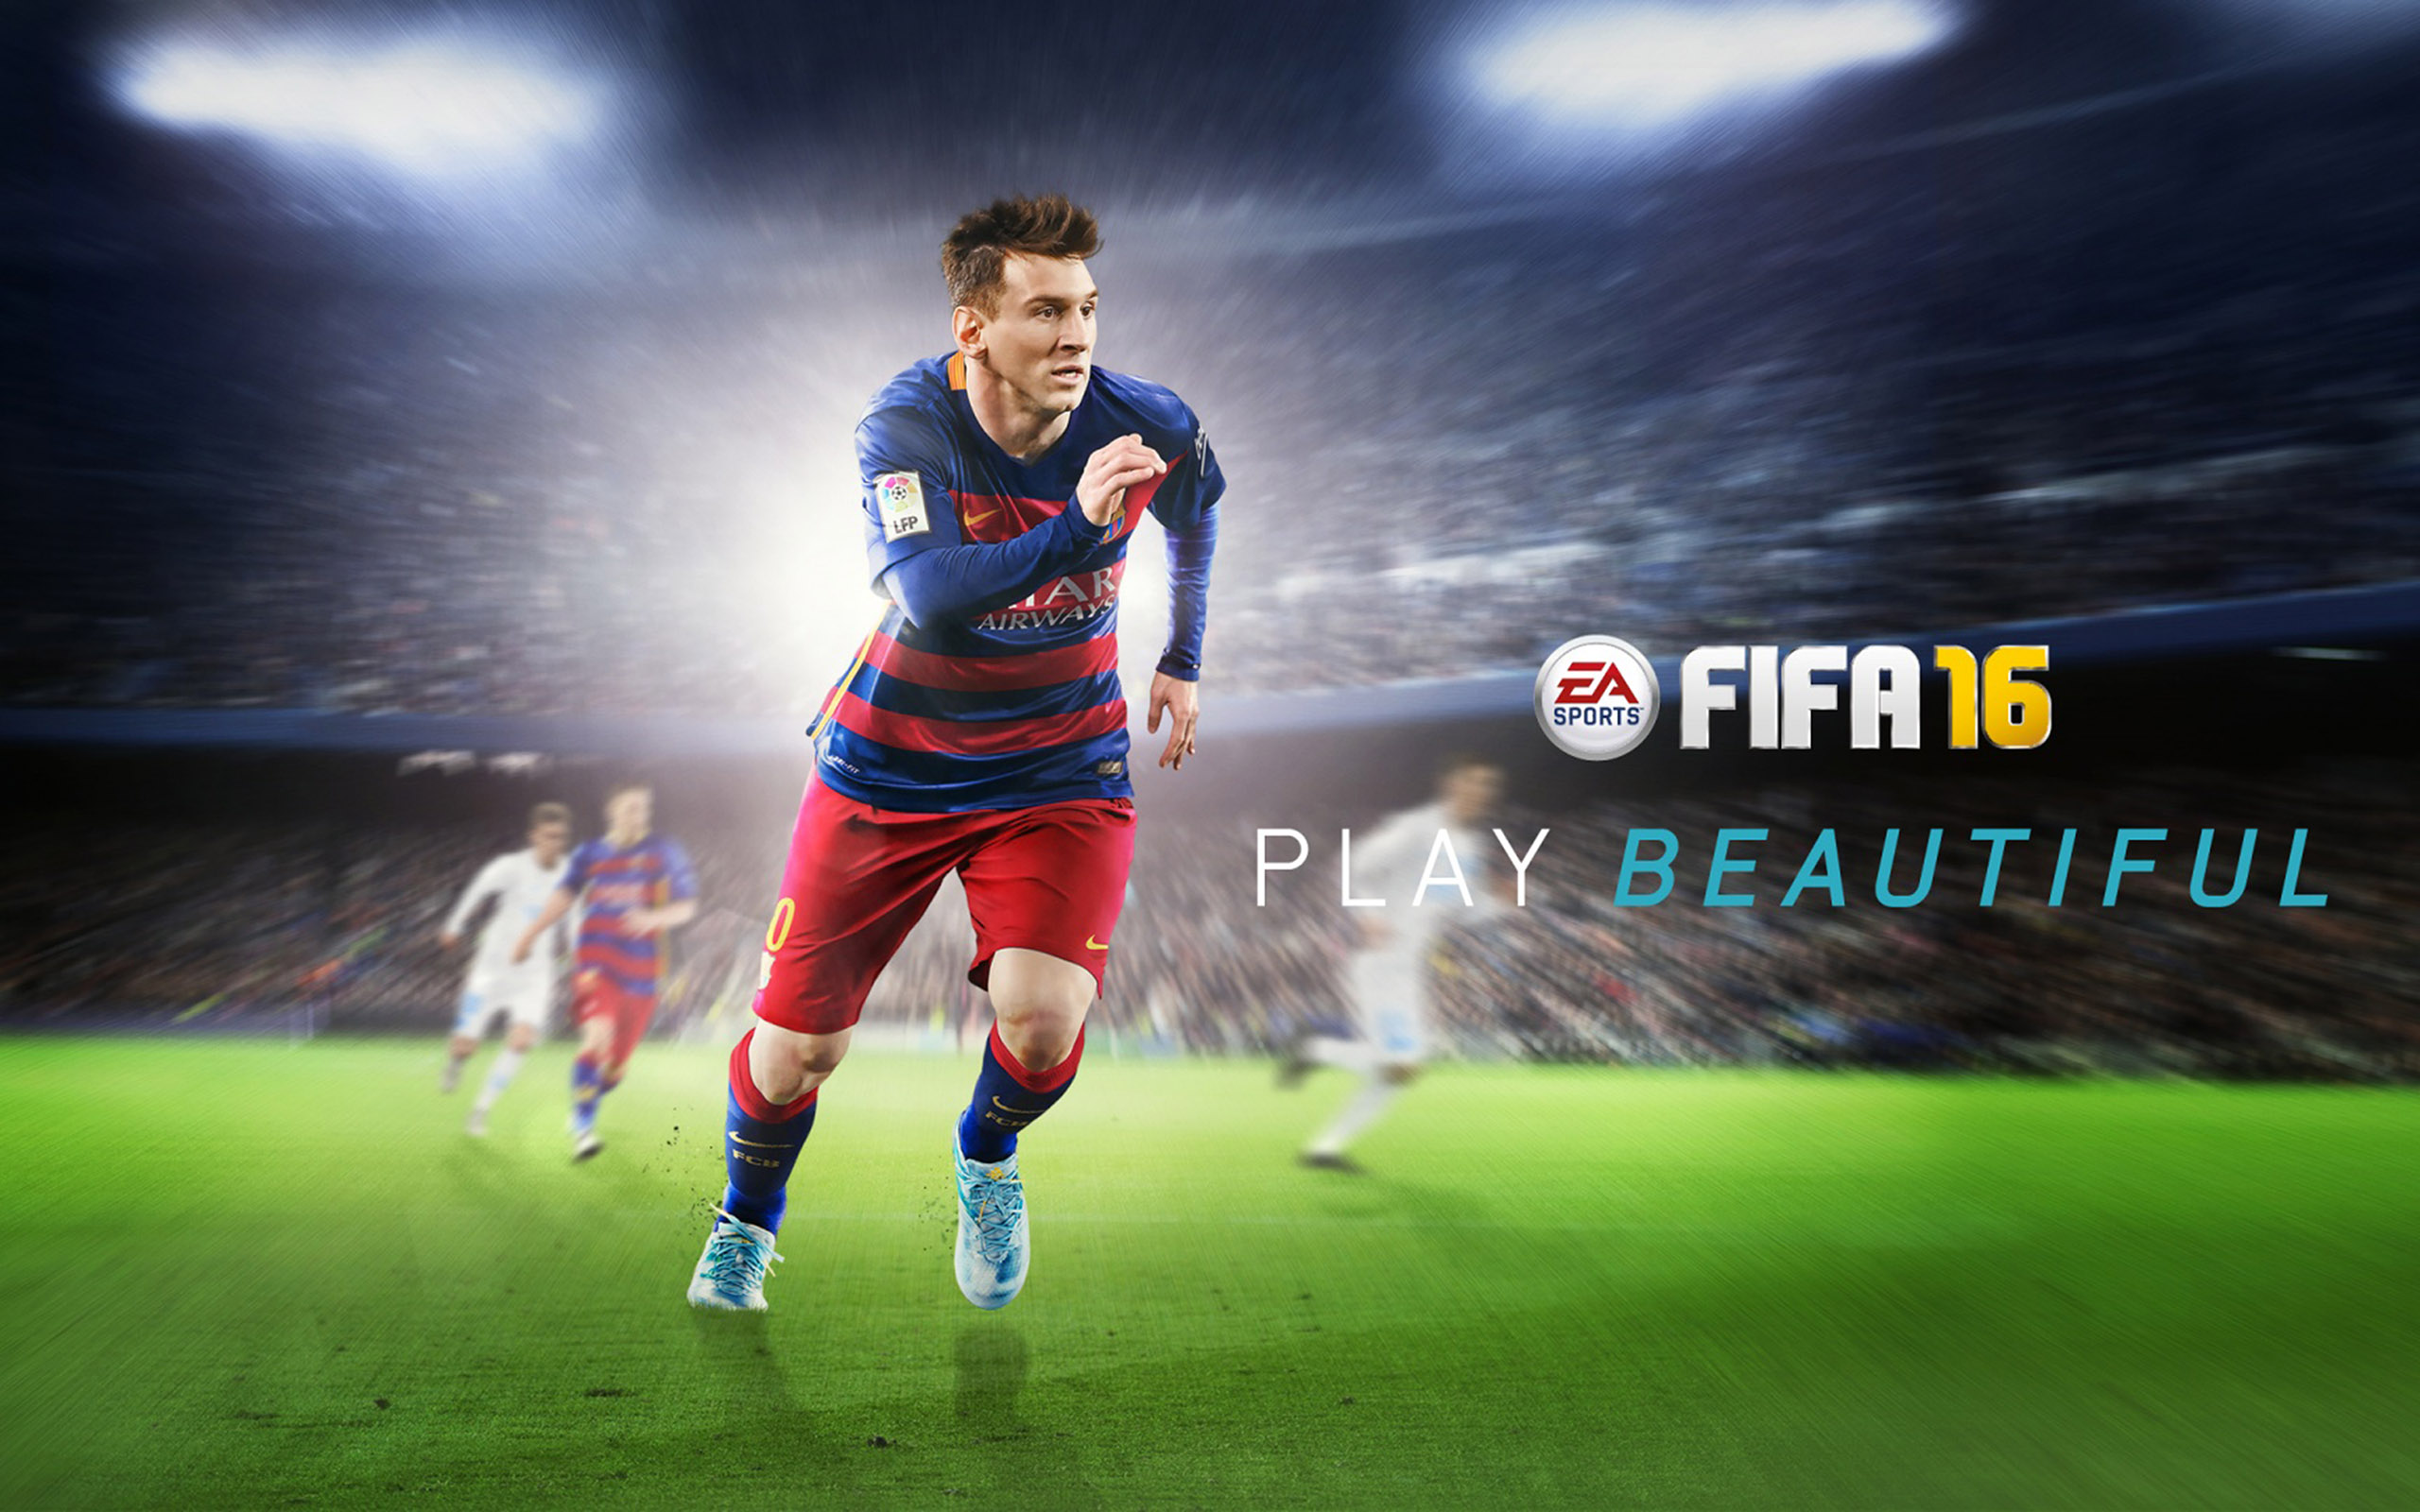 Lionel Messi Wallpapers Hd download 9To5AnimationsCom 2560x1600